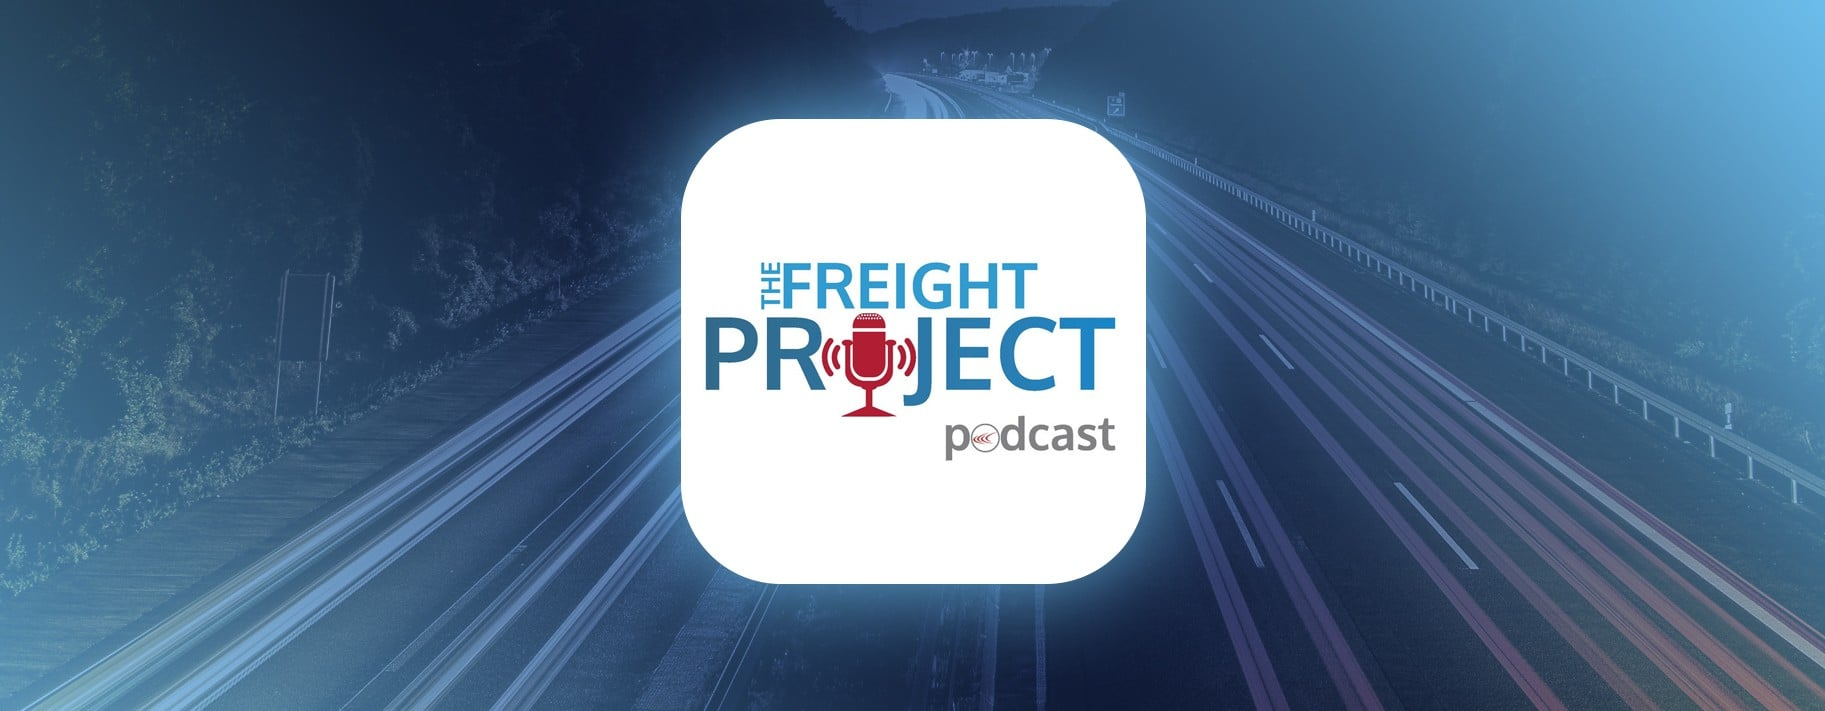 CPG_Logistics_freight_project_podcast